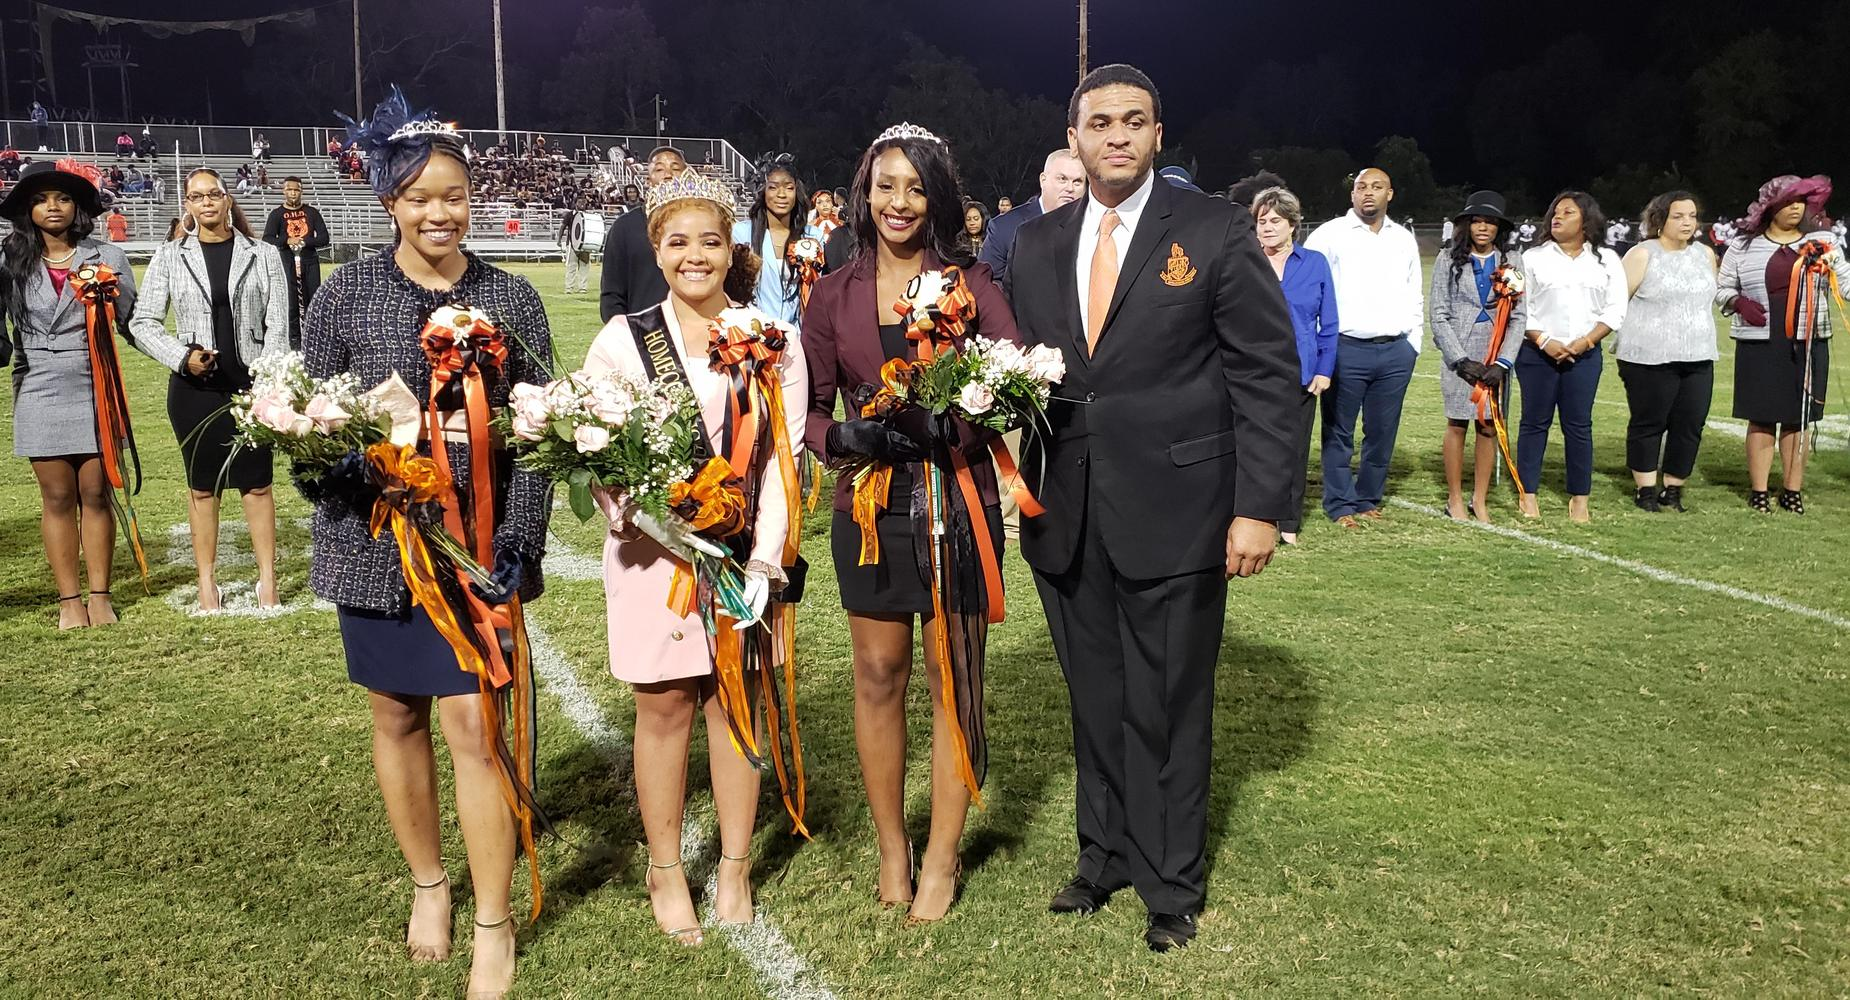 First Maid Bailey Willis, Homecoming Queen Blaire Collins, Second Maid Courtney Lafontaine with Mr. Julien